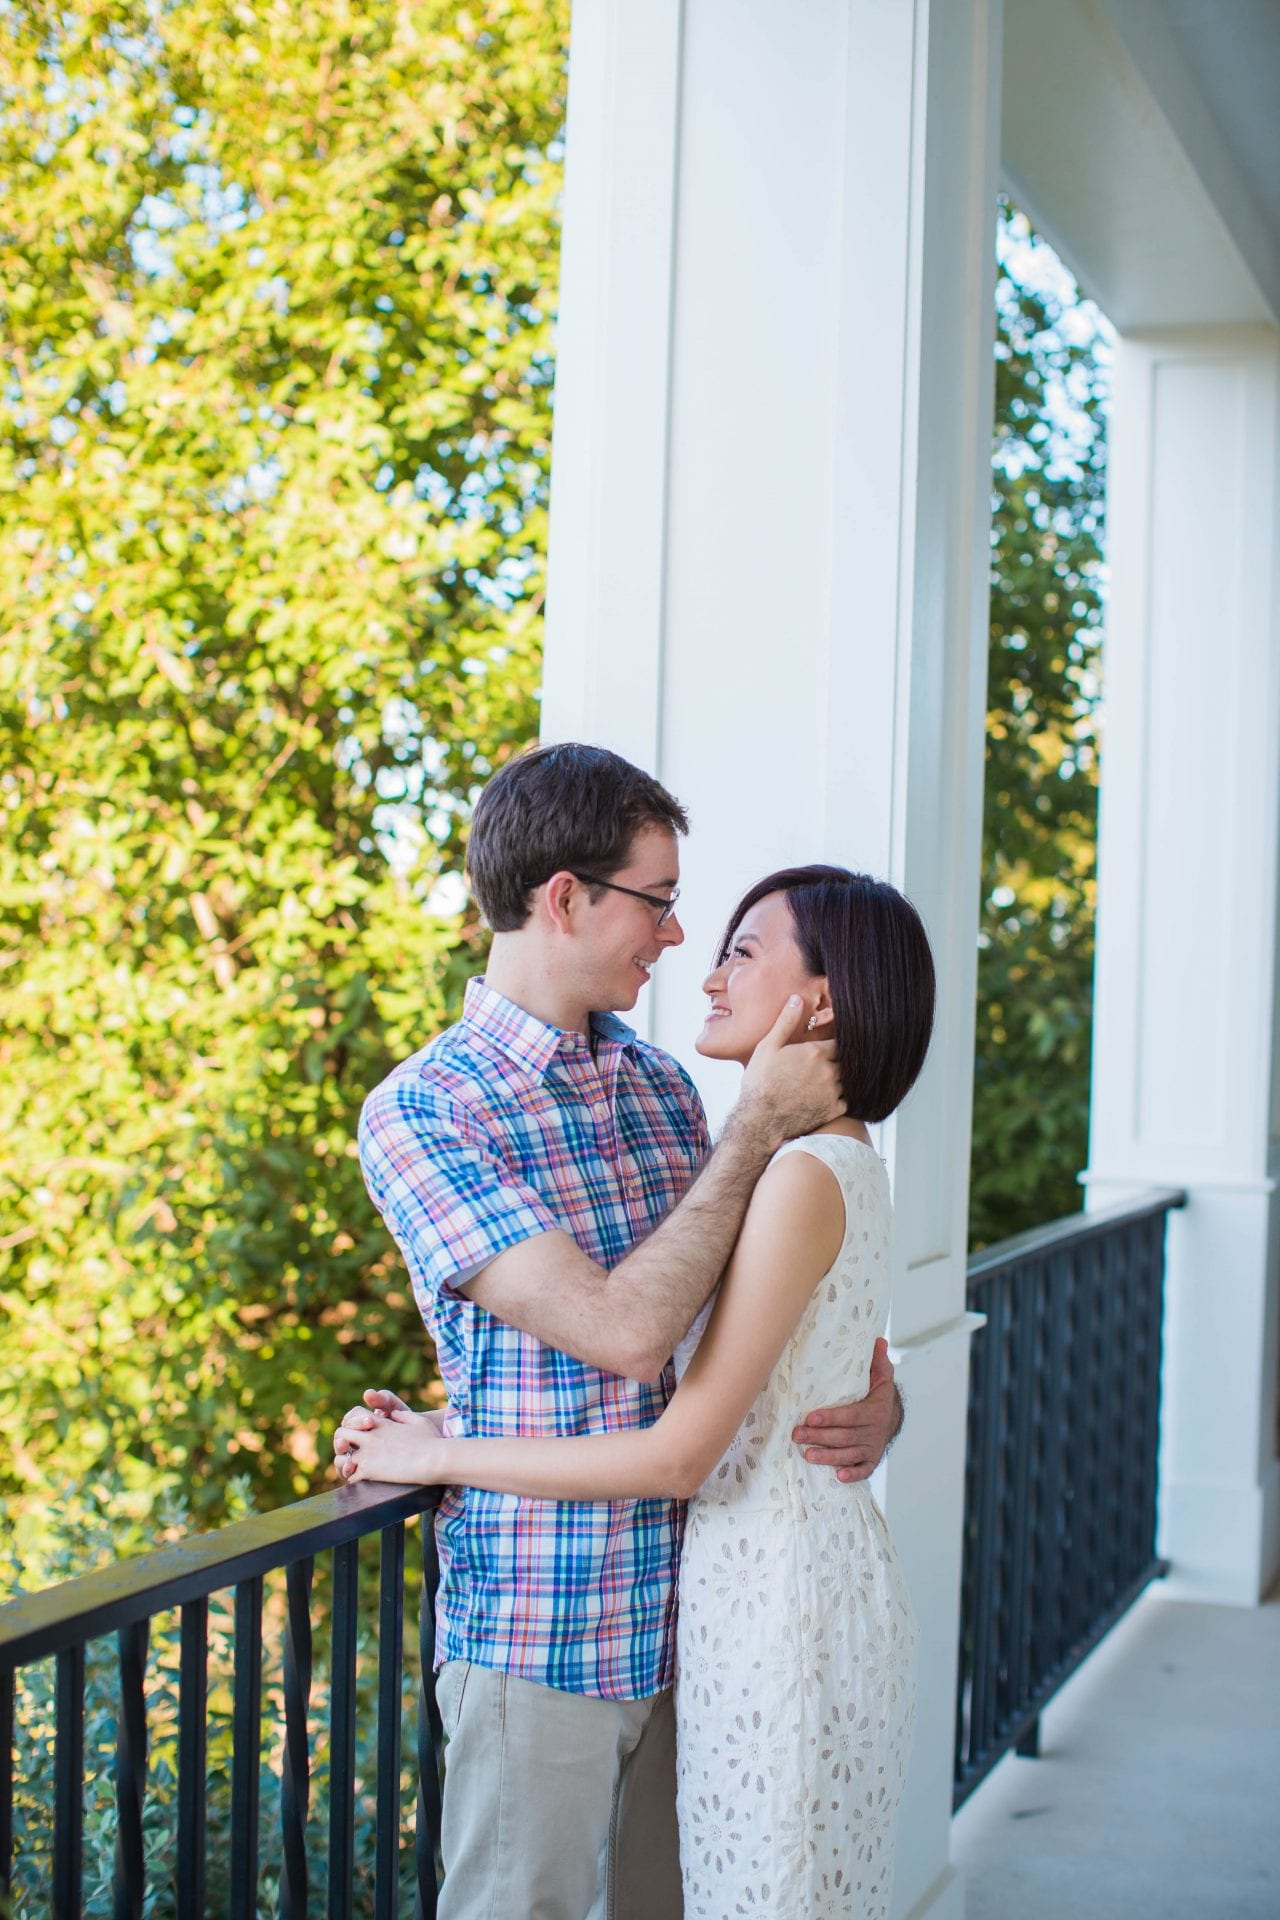 Josh and Tina engagement session at Kendall plantation on the porch